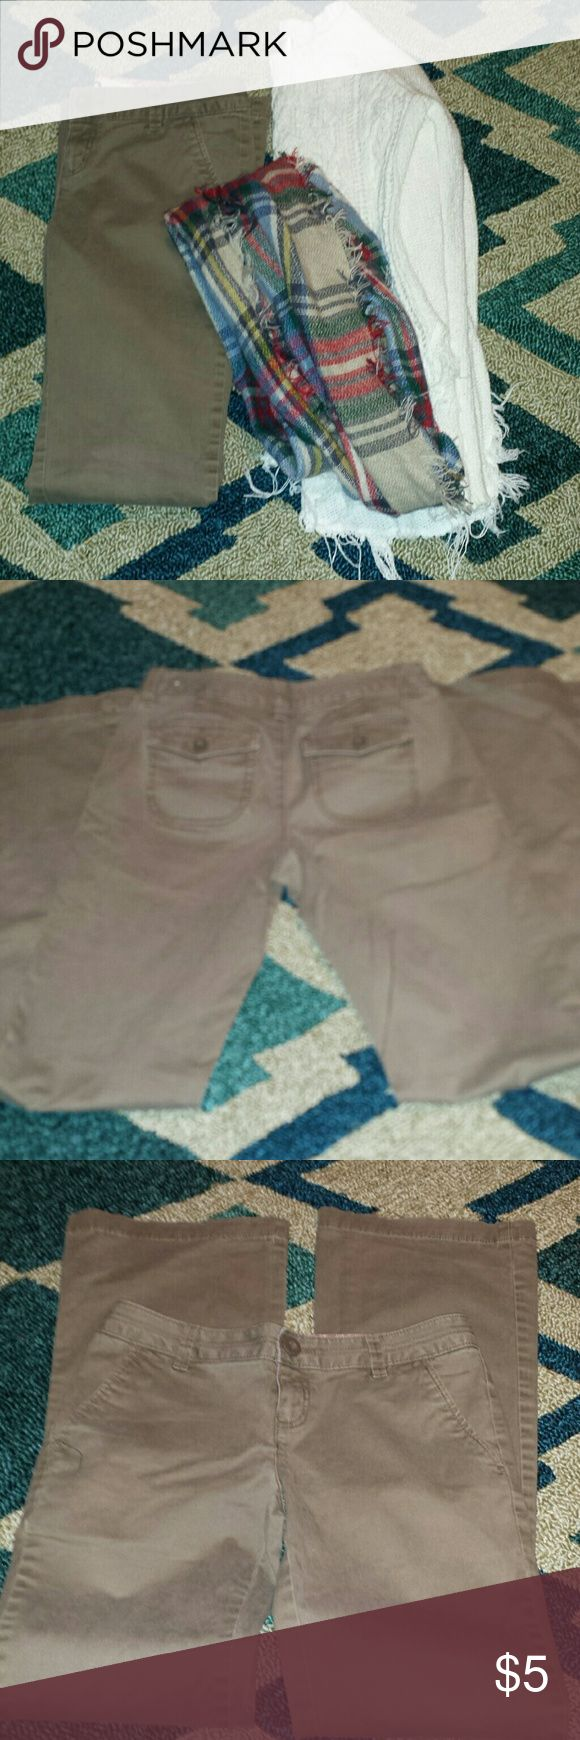 SO BRAND  DARK TAUPE KHAKI PANTS Super cute taupe dark khakis. Size 3 in juniors. Lots of life left I just don't wear them anymore. Wider flare leg bottom. Smoke free home. I ship fast and bundle. Pants only for sale in this listing. SO Pants Boot Cut & Flare